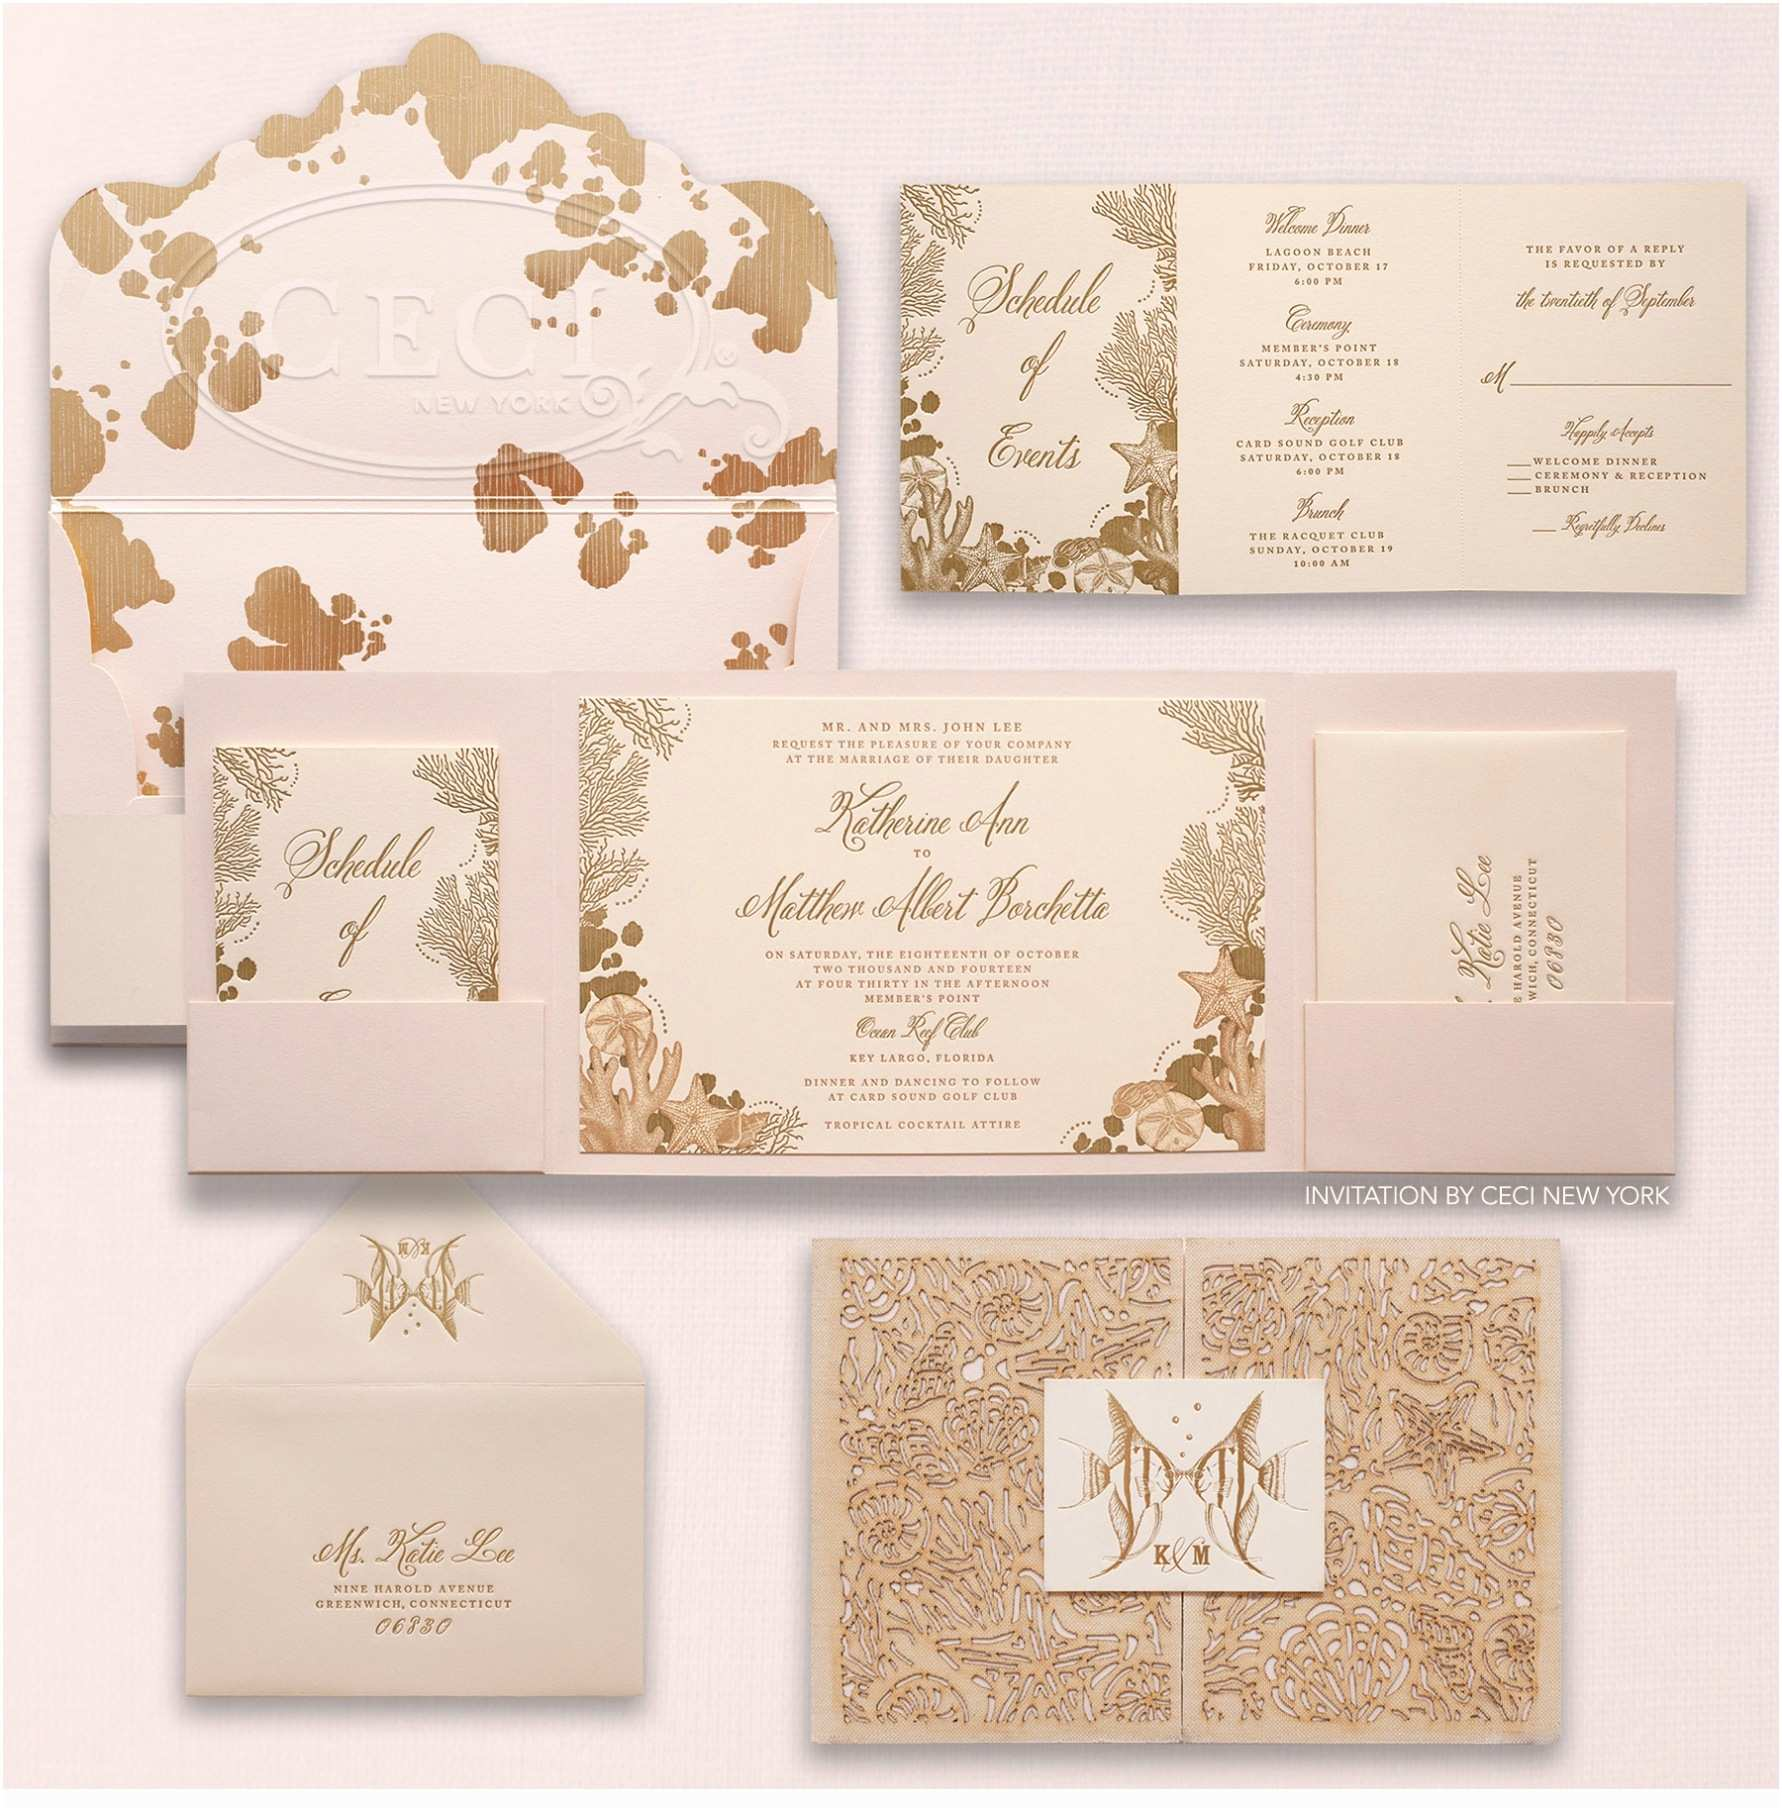 Staples Wedding Invitation Kits Staples Invitations Wedding Various Invitation Card Design